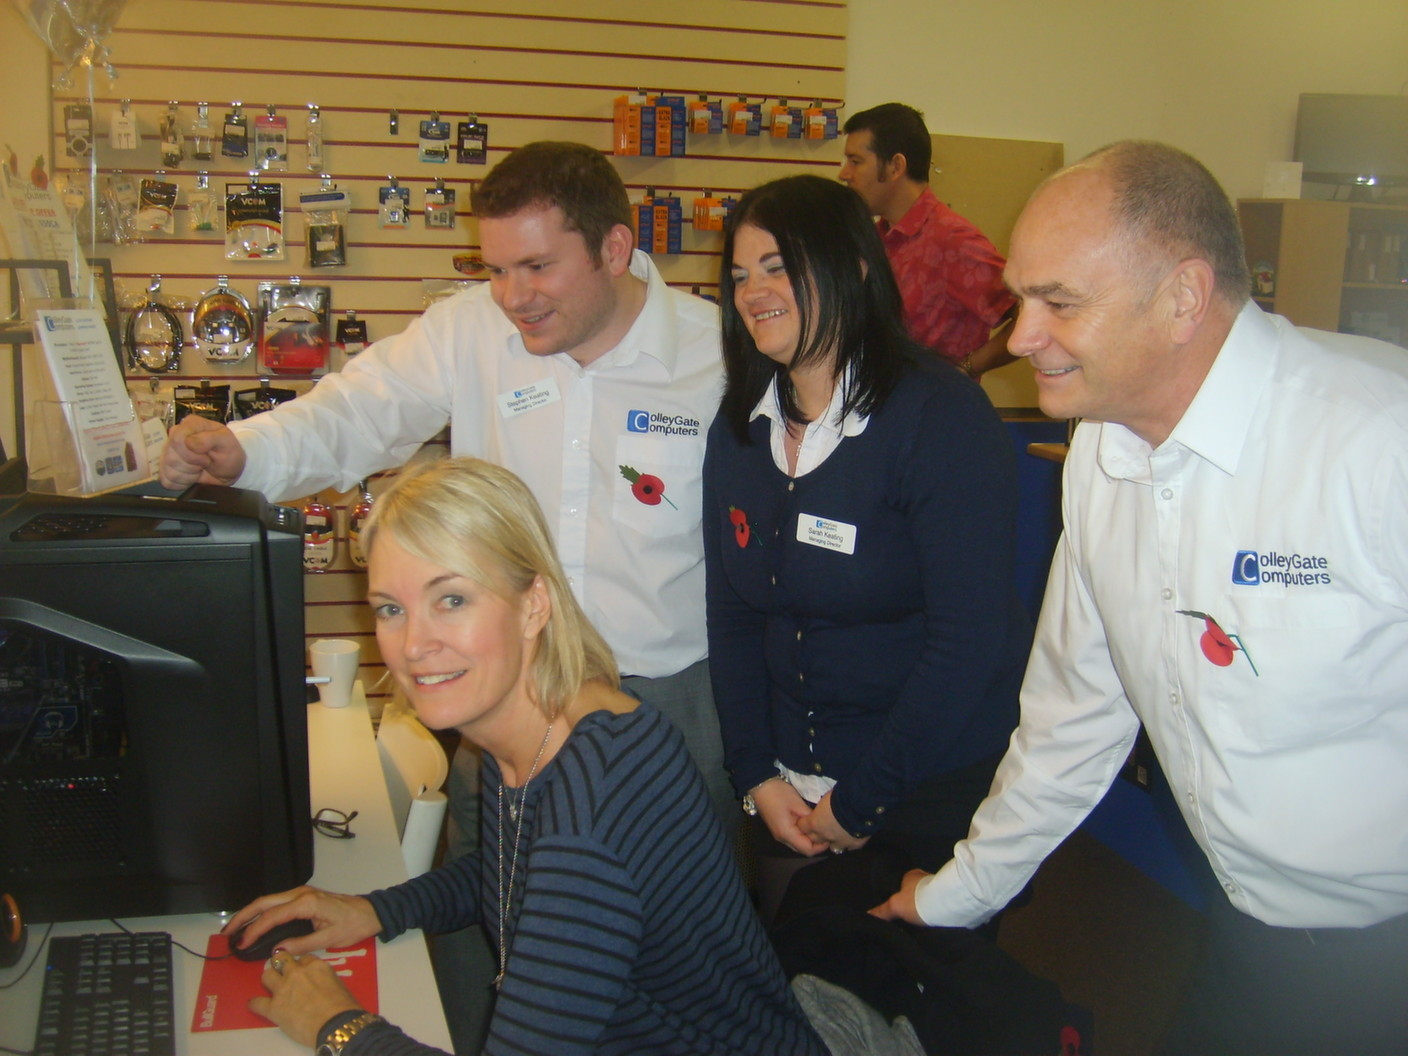 An Open Day is a great event: here CRADLEY MP Margot James plays a computer game at Colley Gate Computers